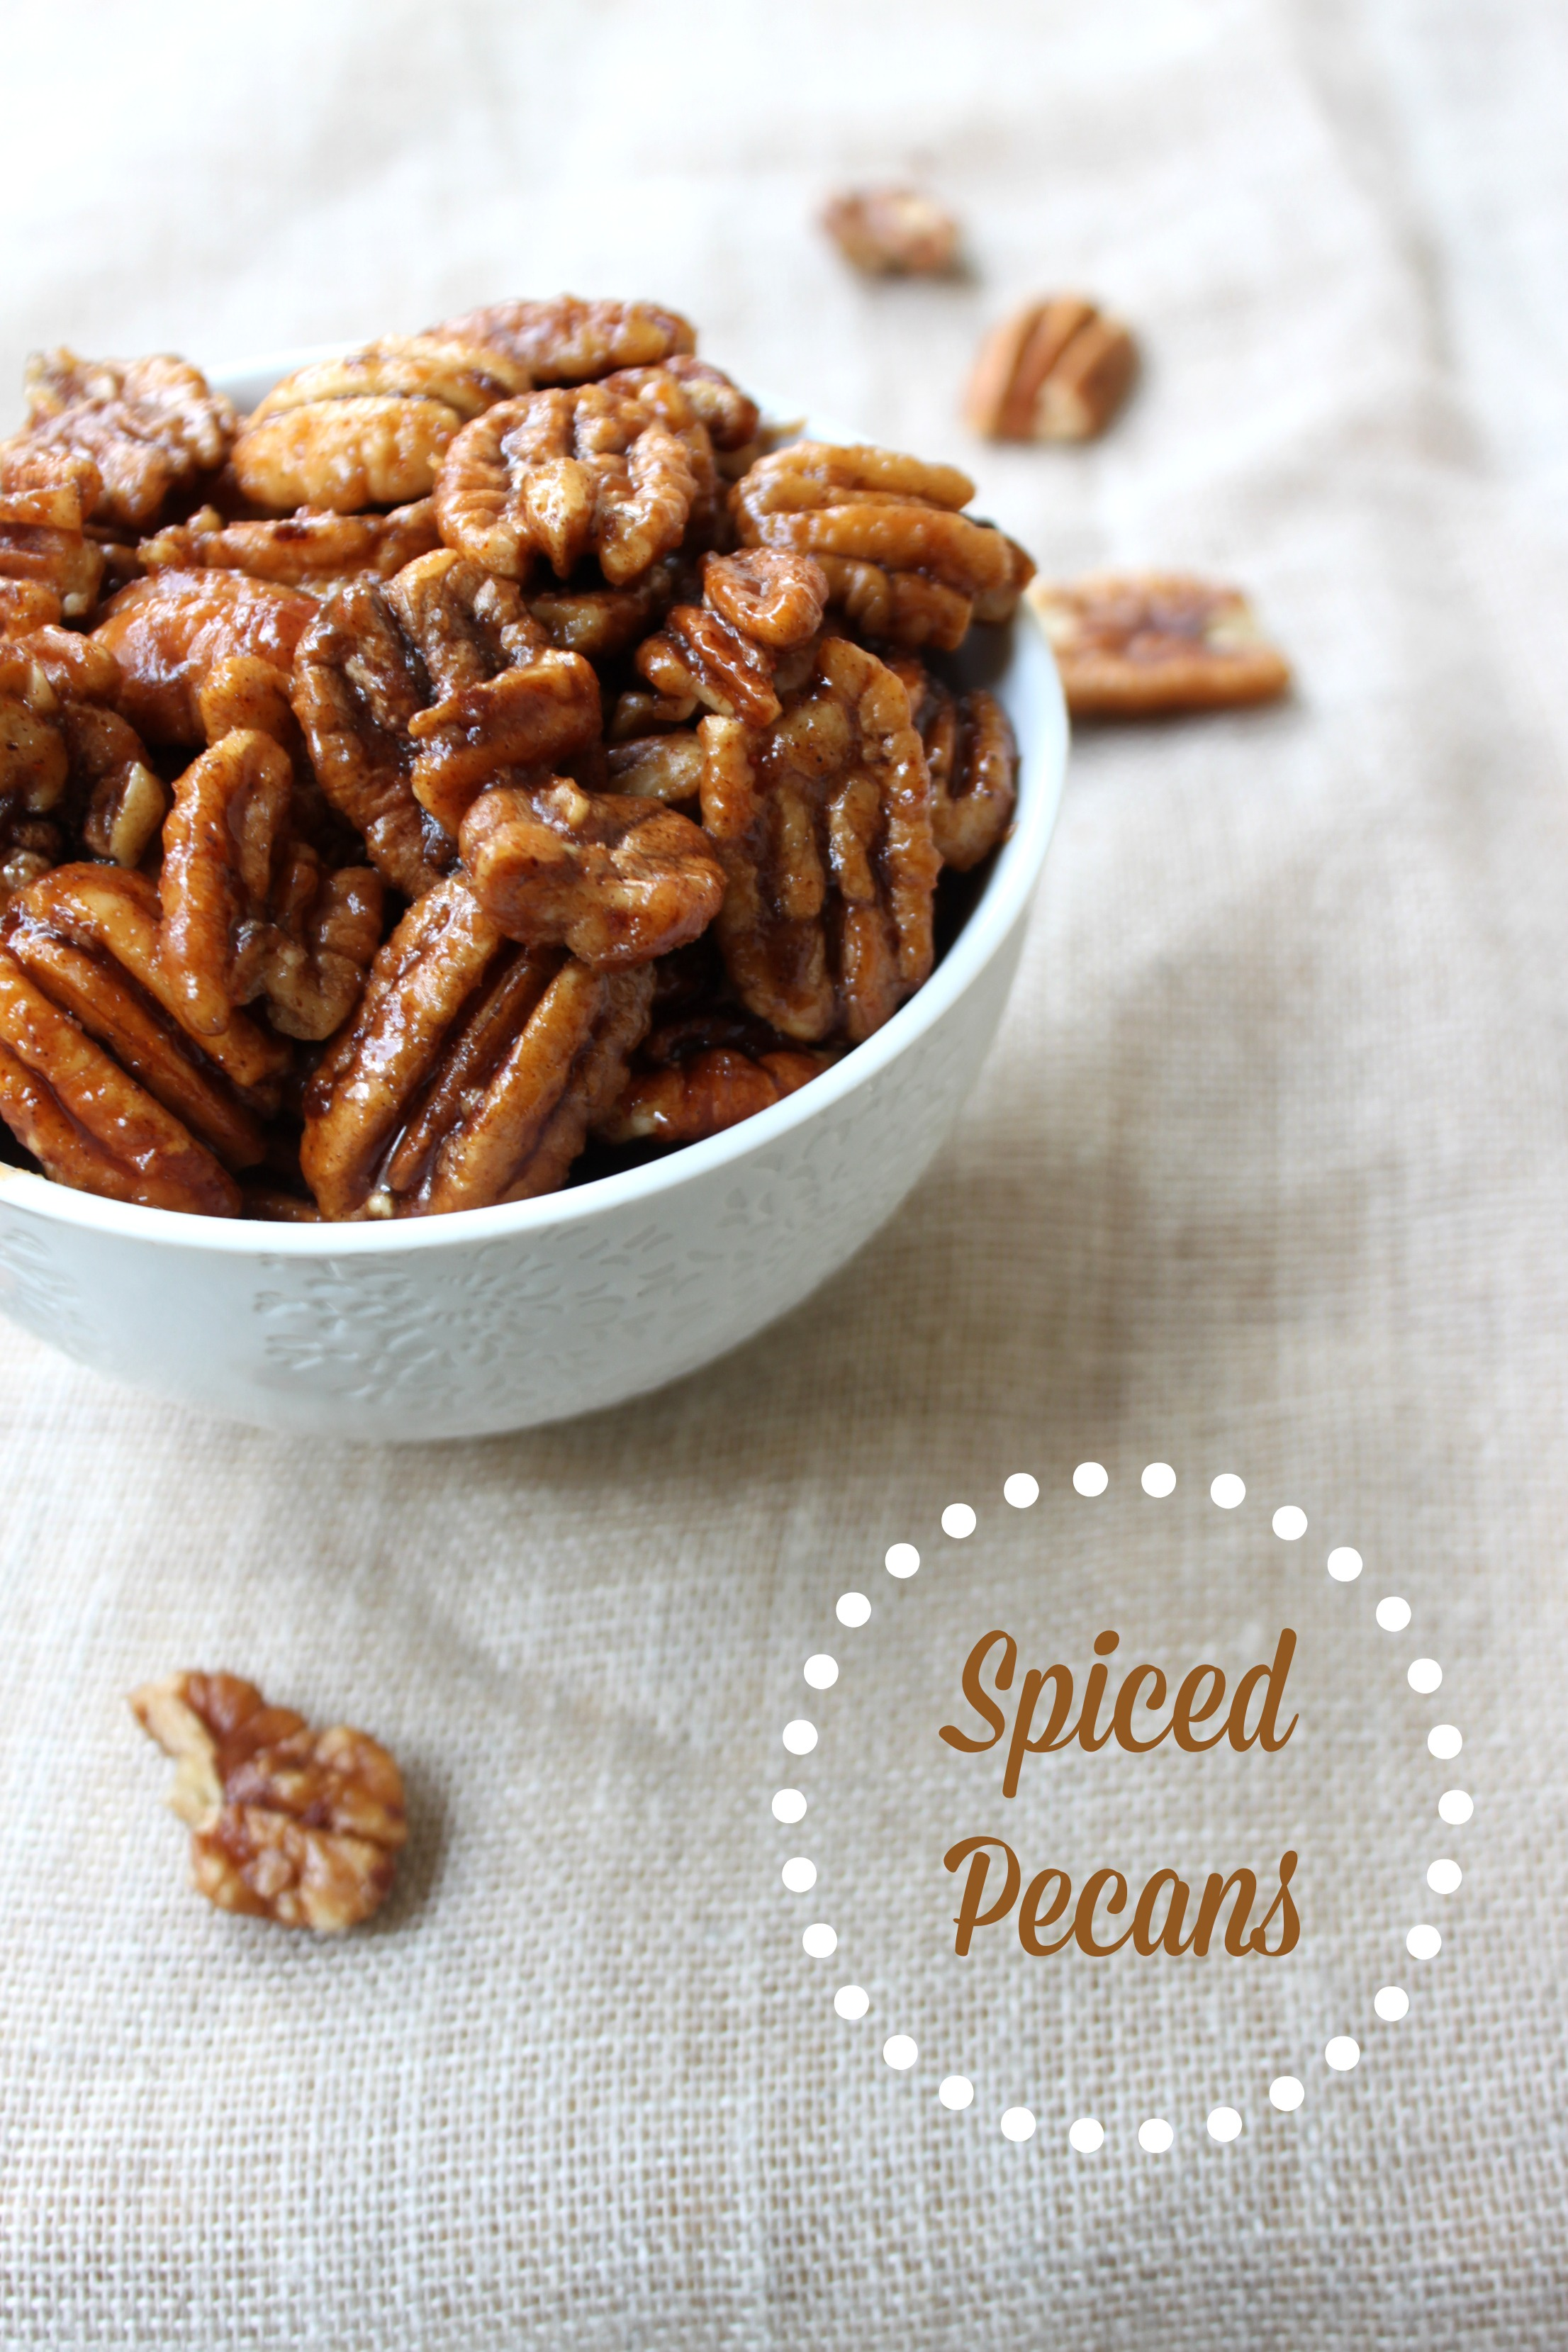 National Pecan Day  Spiced Pecans  The Foodie Patootie